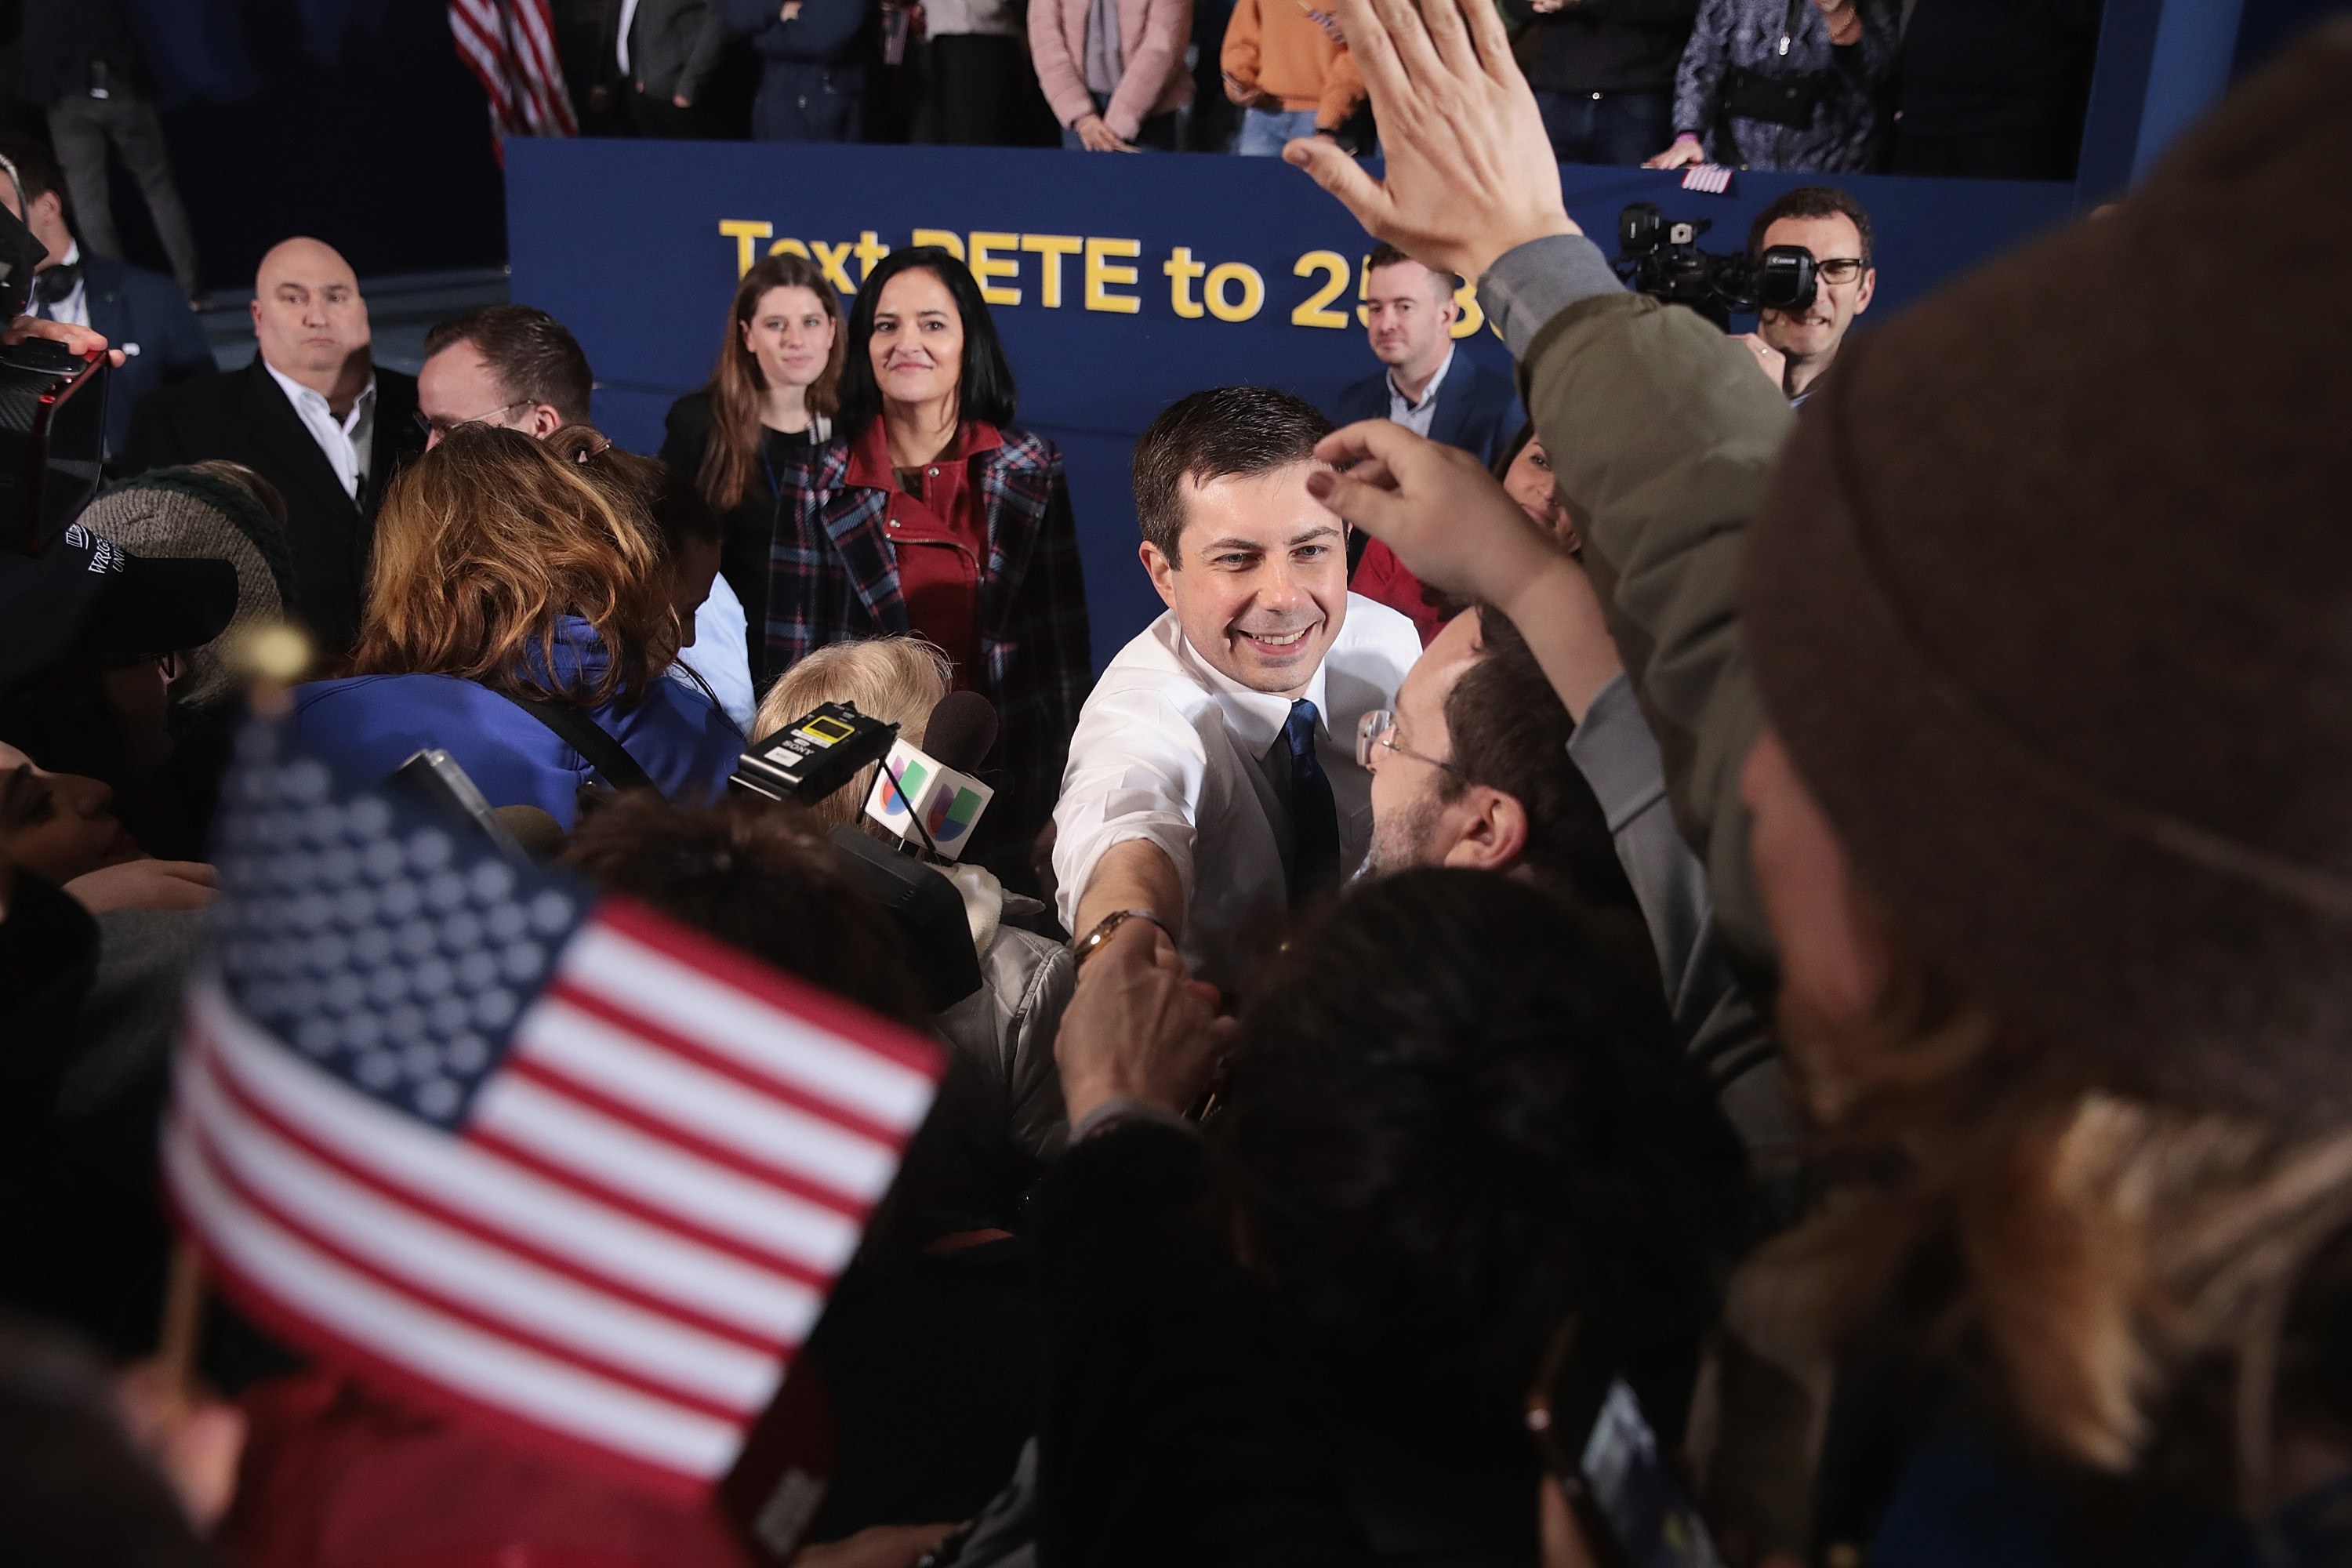 SOUTH BEND, INDIANA - APRIL 14: South Bend Mayor Pete Buttigieg greets guests after announcing that he will be seeking the Democratic nomination for president during a rally in the old Studebaker car factory on April 14, 2019 in South Bend, Indiana. Buttigieg has been drumming up support for his run during several recent campaign swings through Iowa, where he will be retuning to continue his campaign later this week. (Photo by Scott Olson/Getty Images)